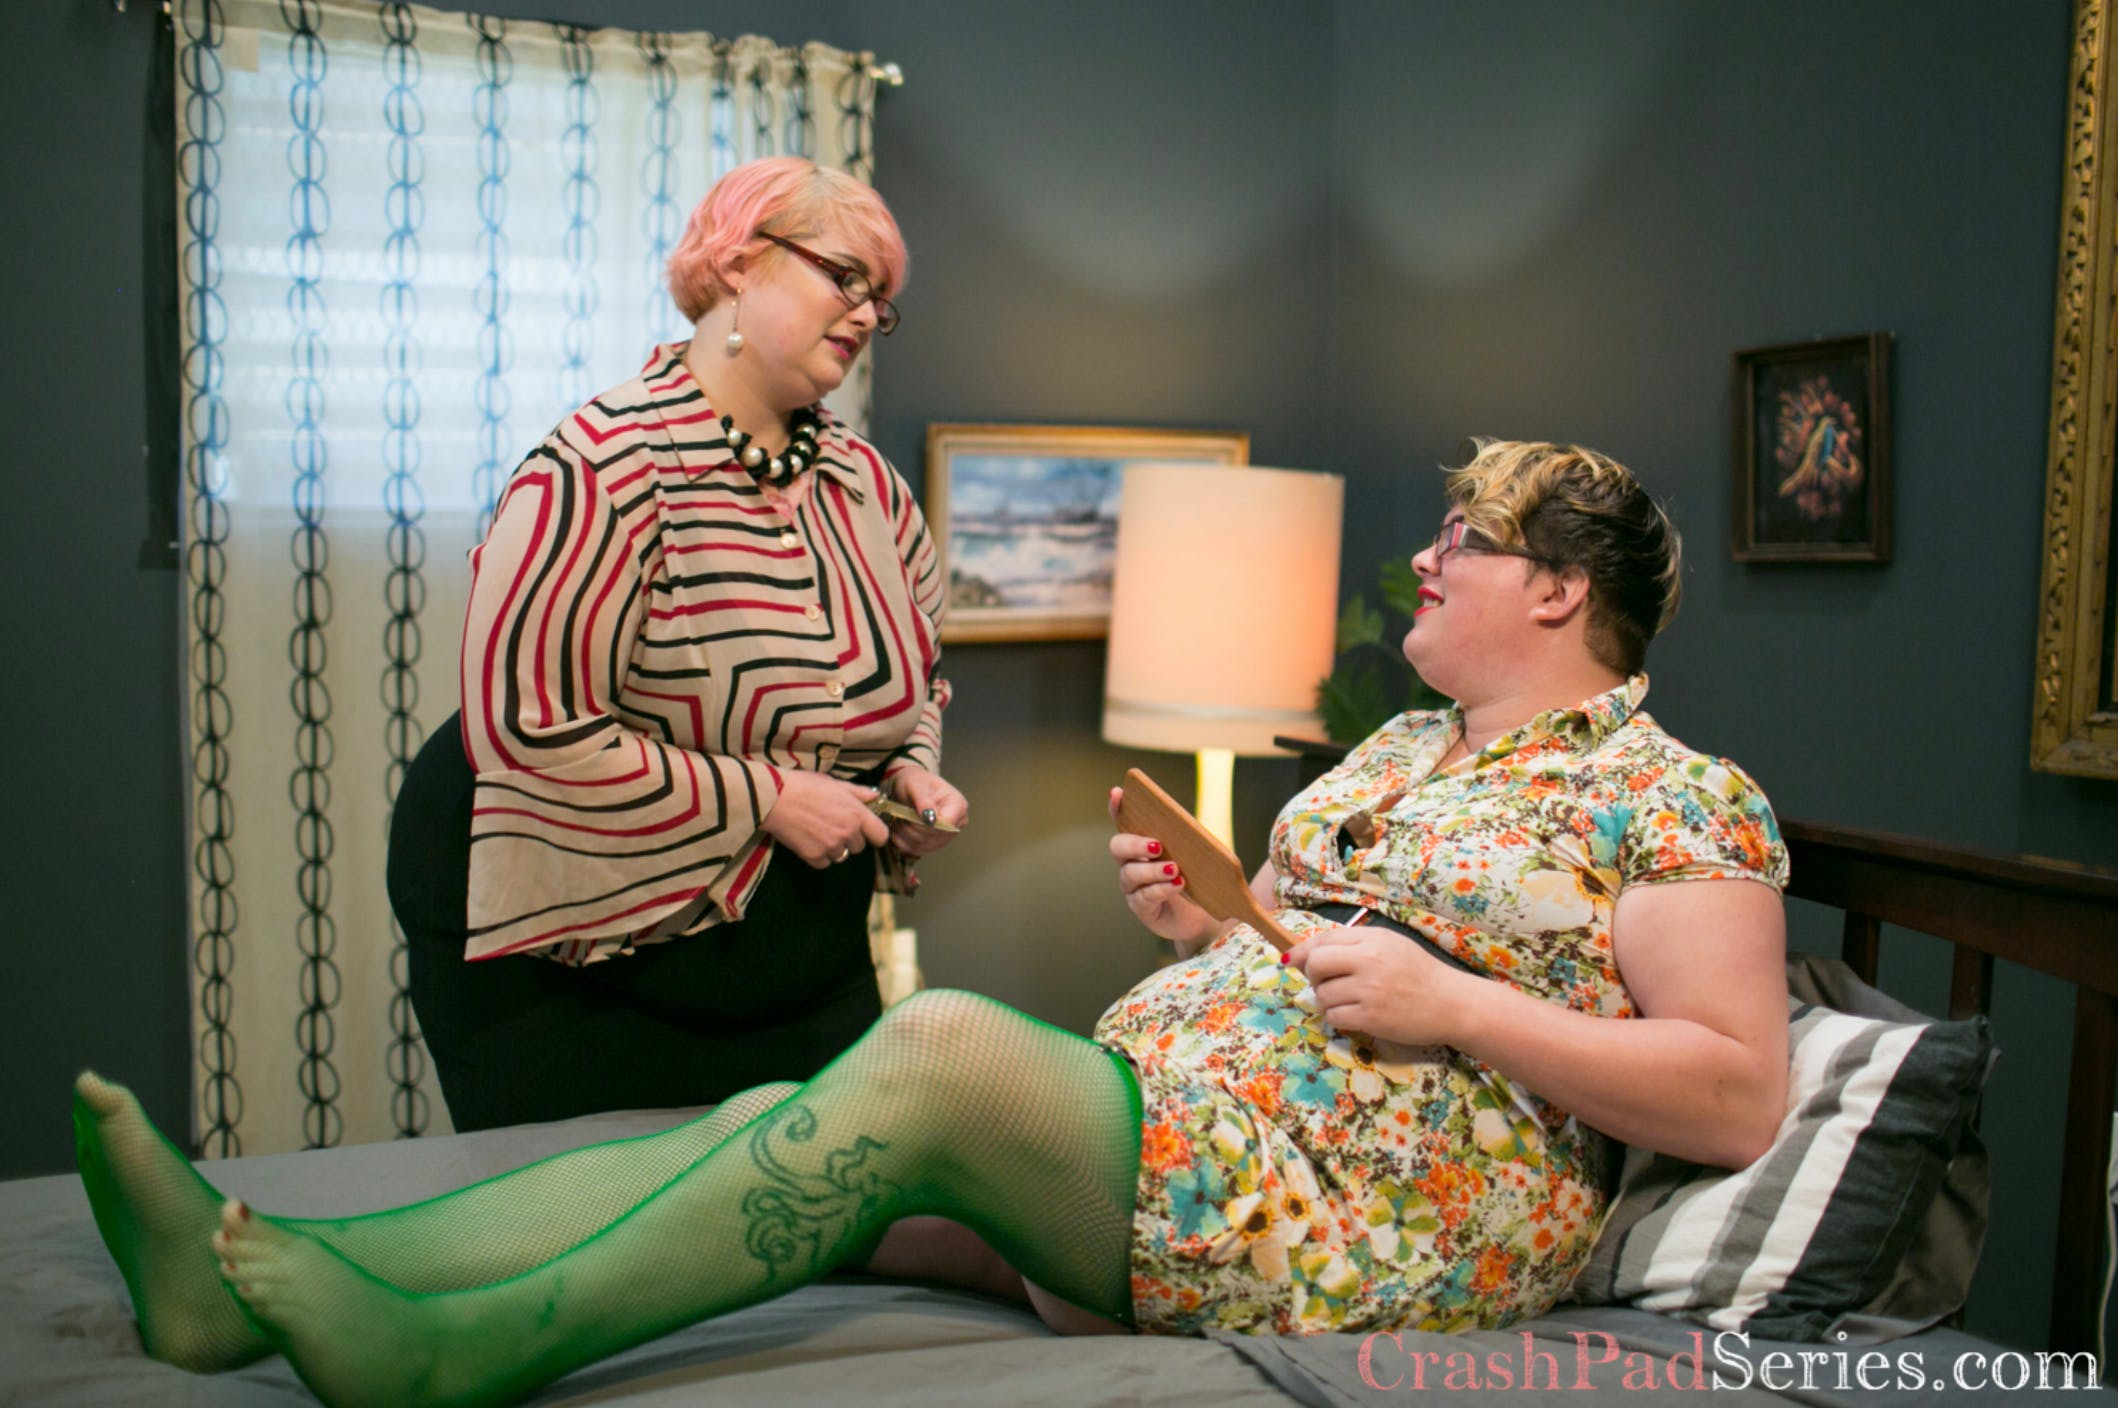 Photo of Jetta Rae laying on a bed holding a paddle while Kitty Styker stands next to her in conversation.